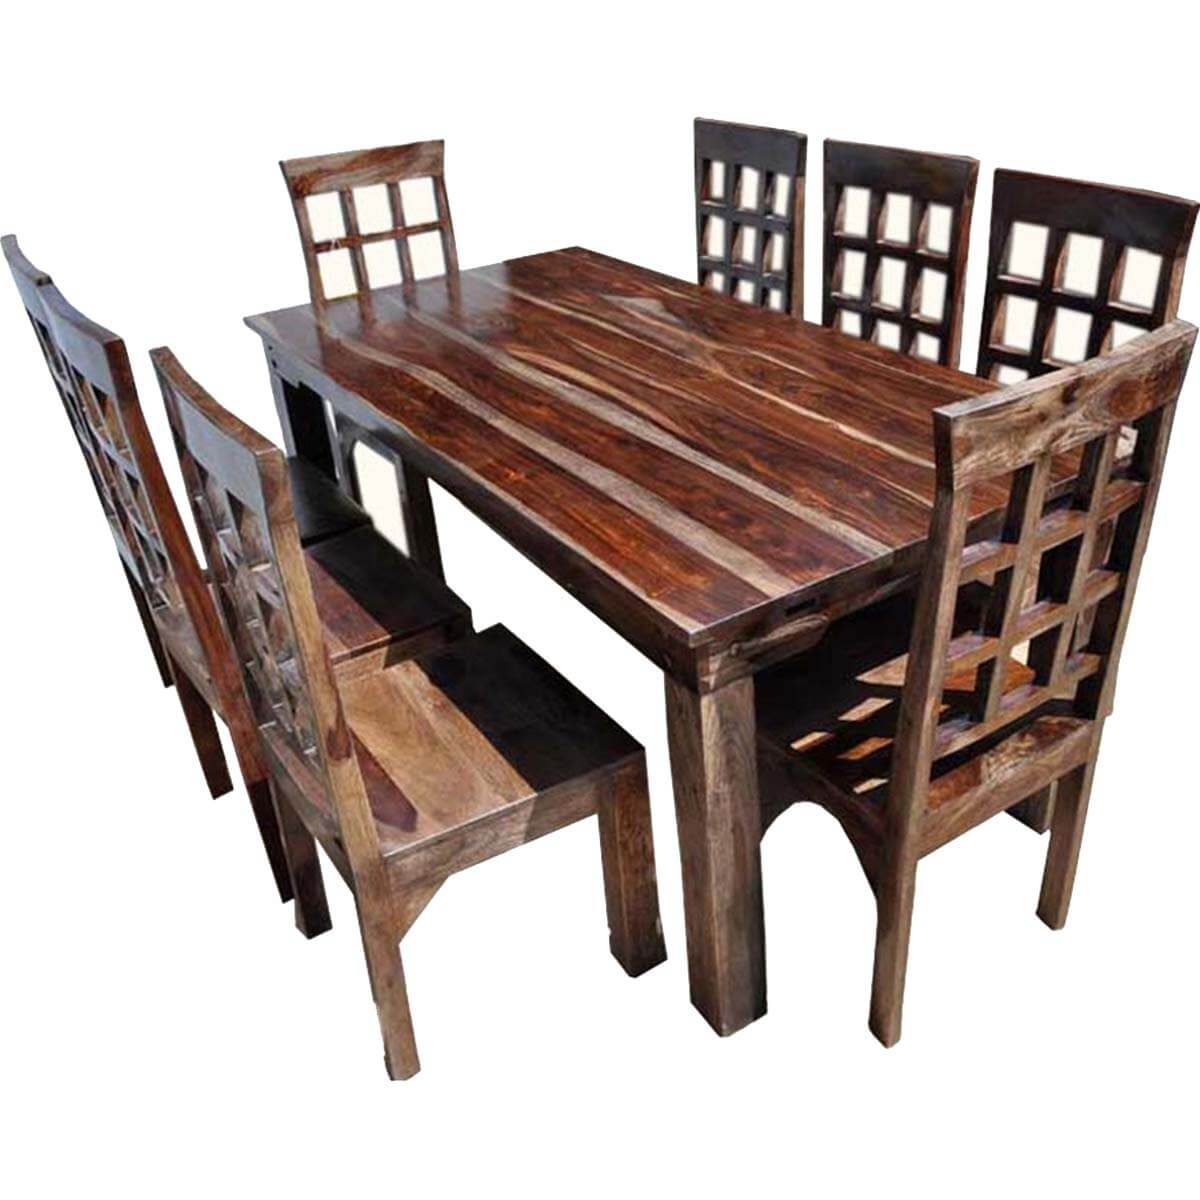 Farmhouse solid wood dining table chairs sideboard set for Dining chairs and tables